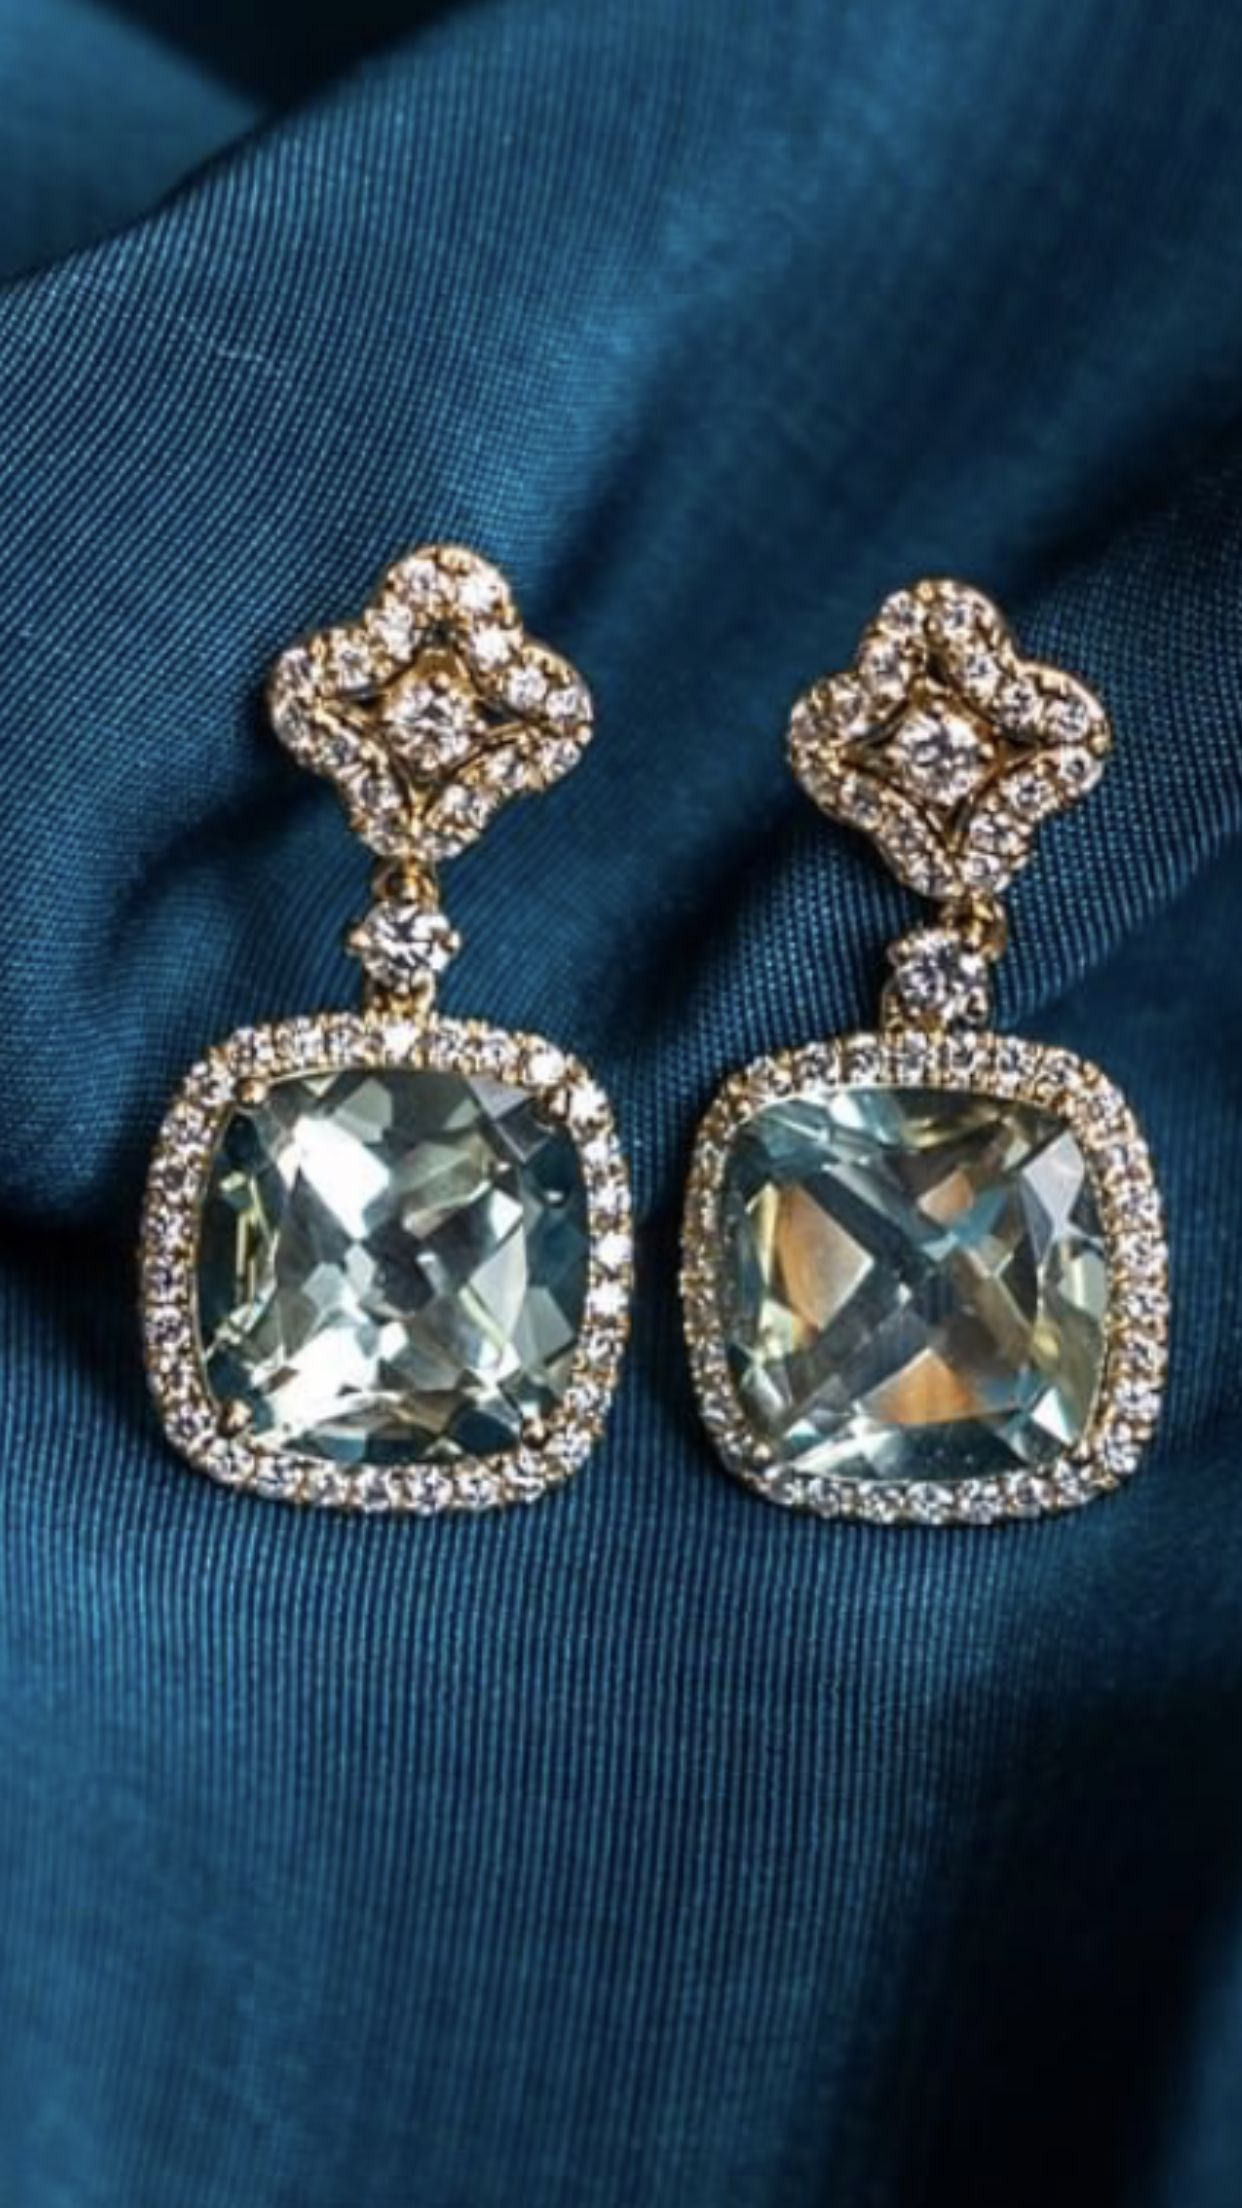 4c6cabd31 Goa, Studs, Diamond Earrings, Diamonds, Jitter Glitter, Earrings, Rocks,